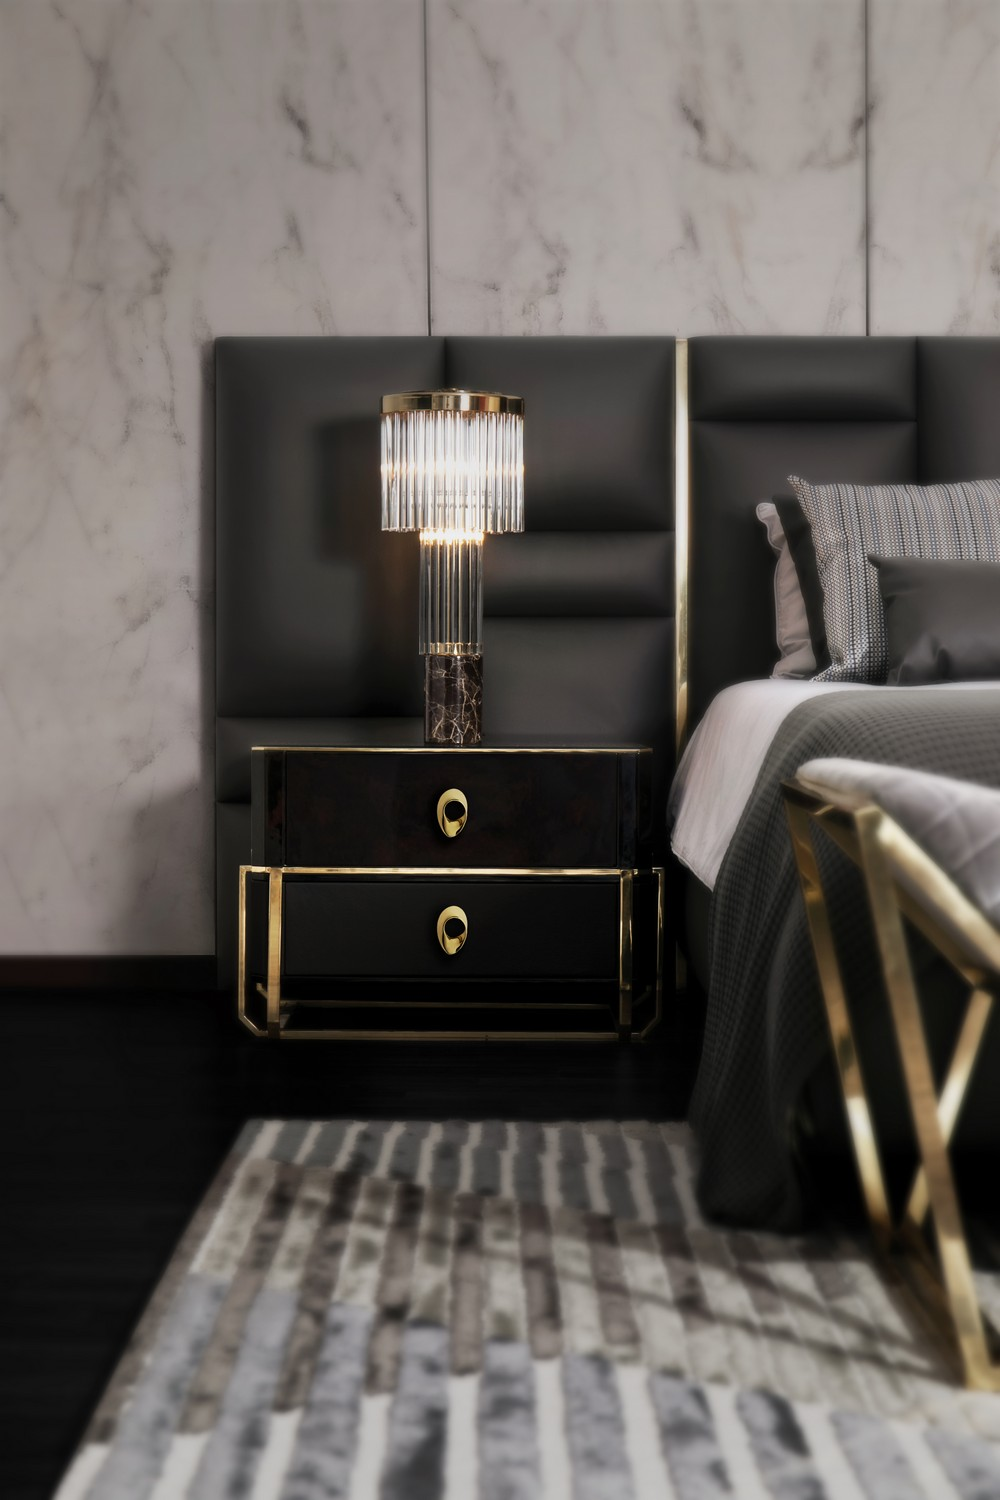 Renew Your Bedroom Furniture Designs with Decorative Hardware 2 bedroom furniture Renew Your Bedroom Furniture Designs with Decorative Hardware Renew Your Bedroom Furniture Designs with Decorative Hardware 2